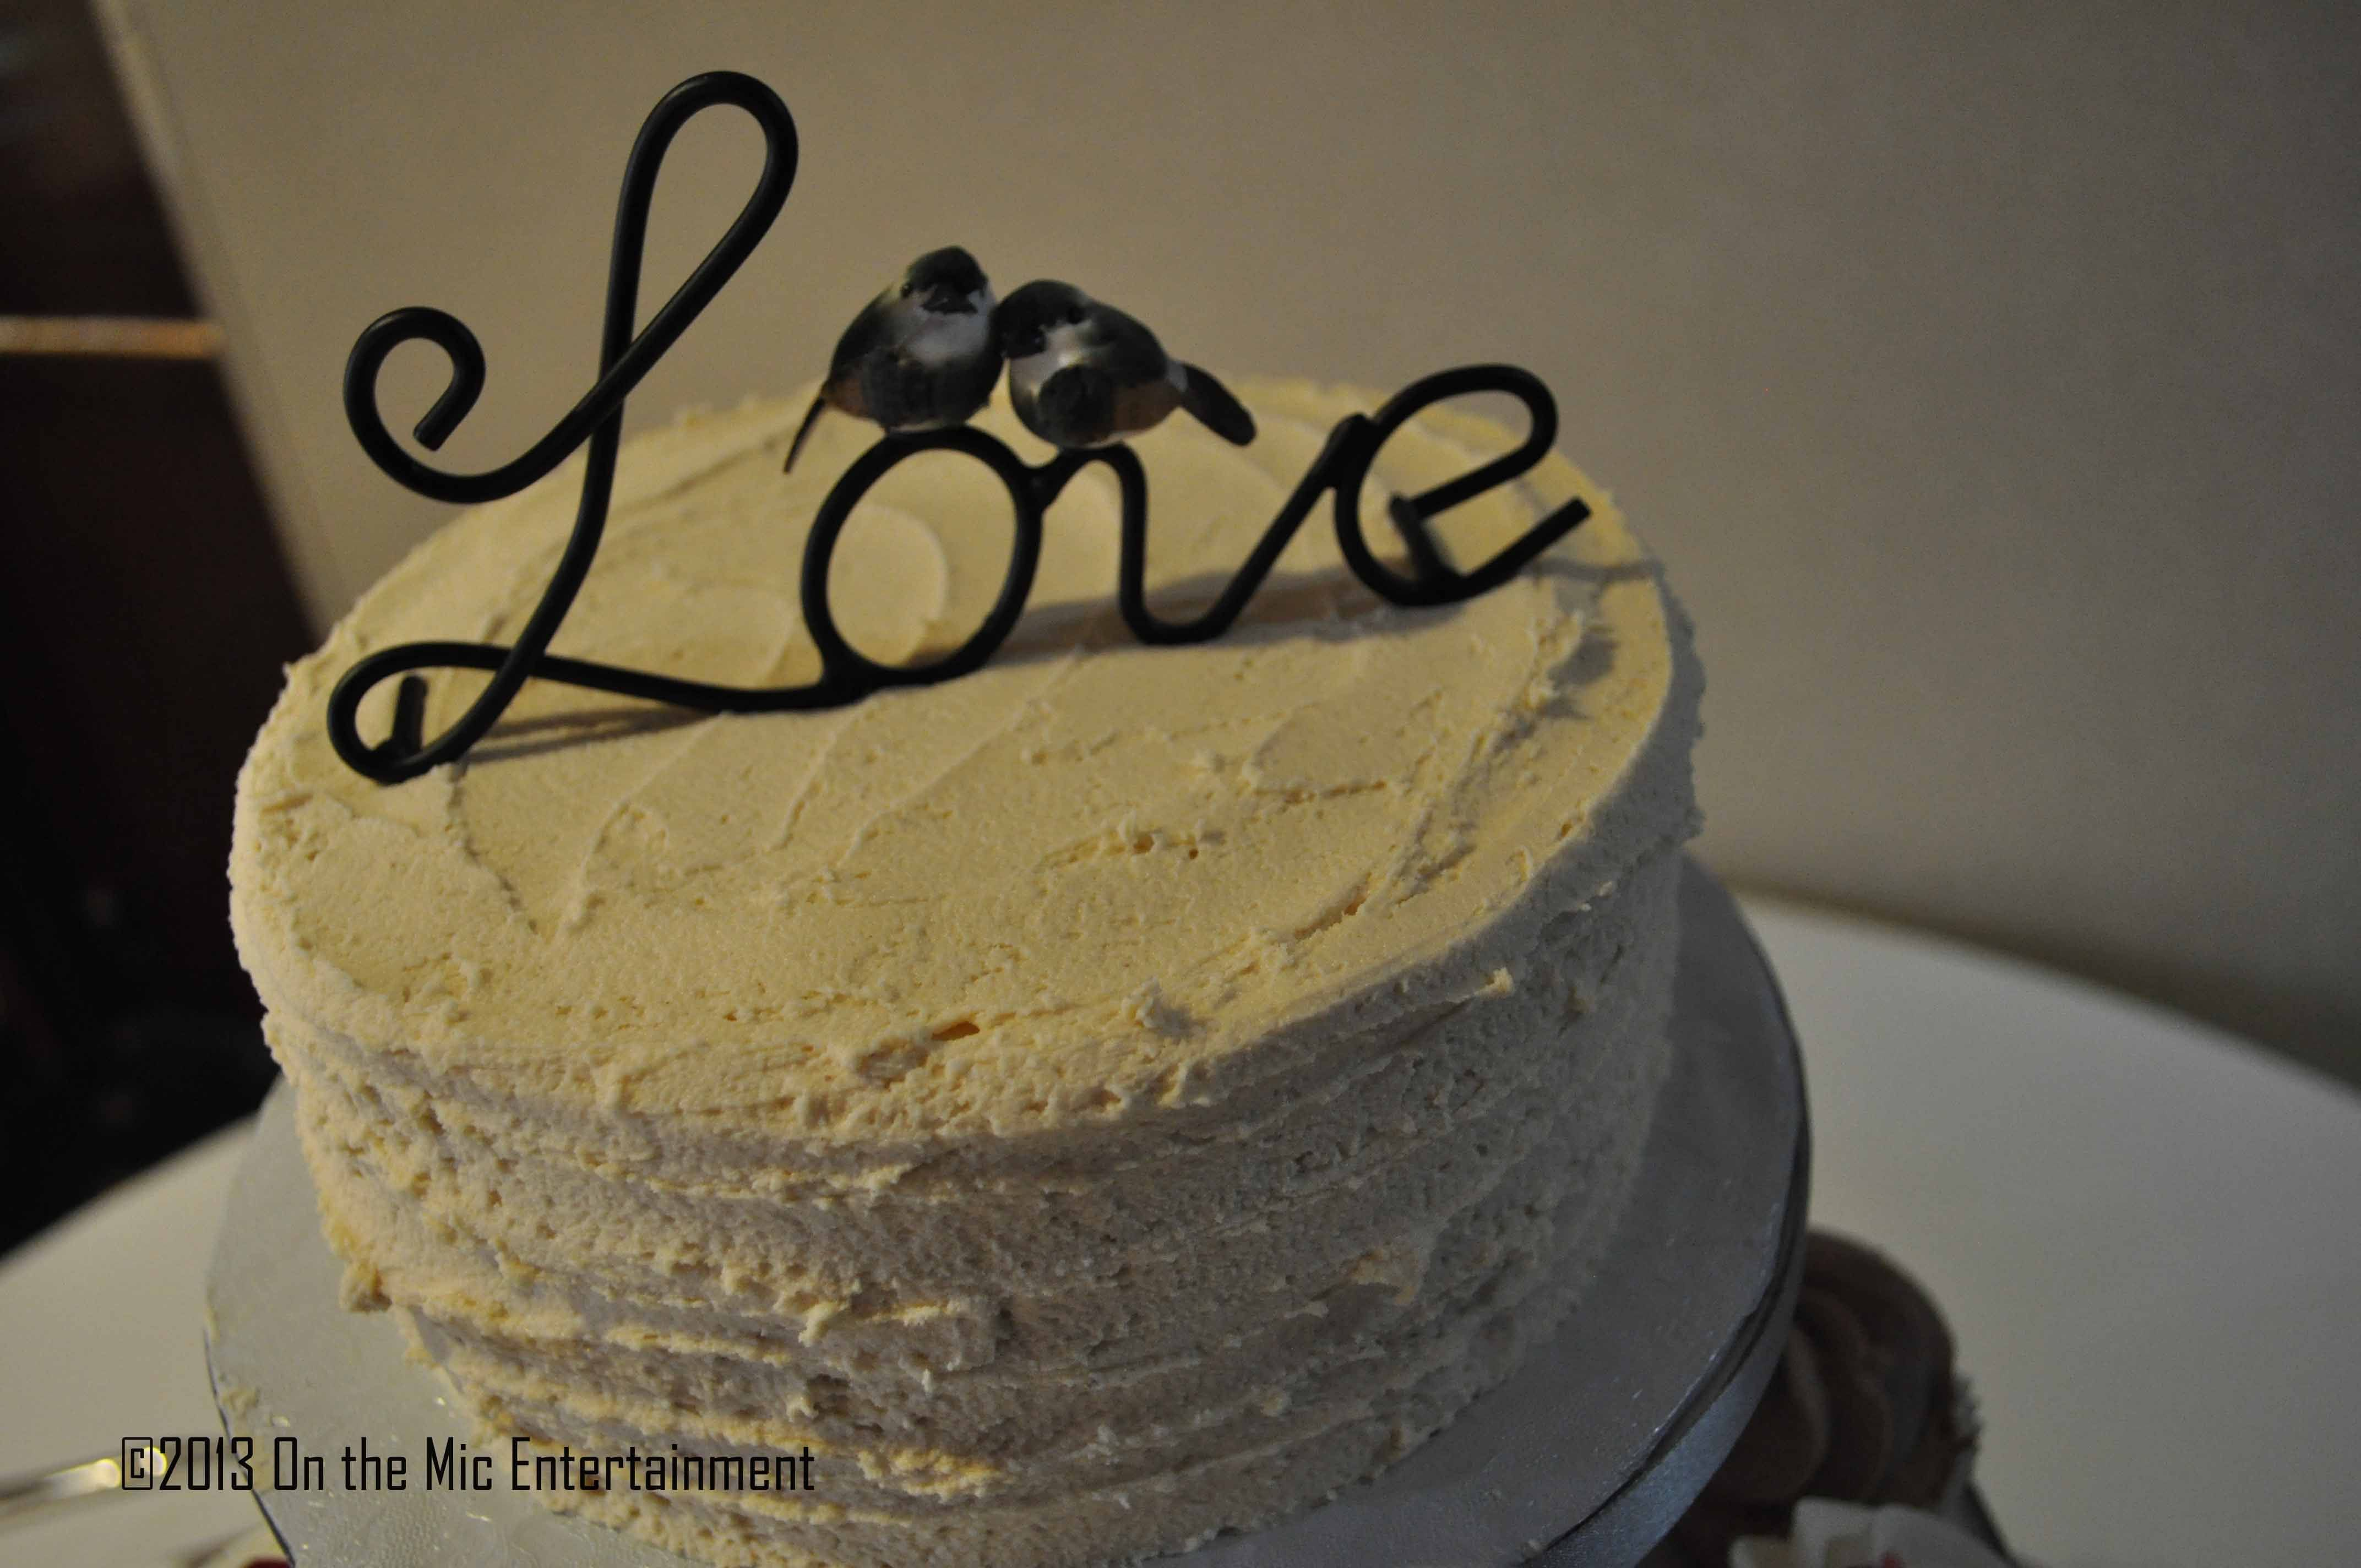 Very cute cake topper! Says it all!